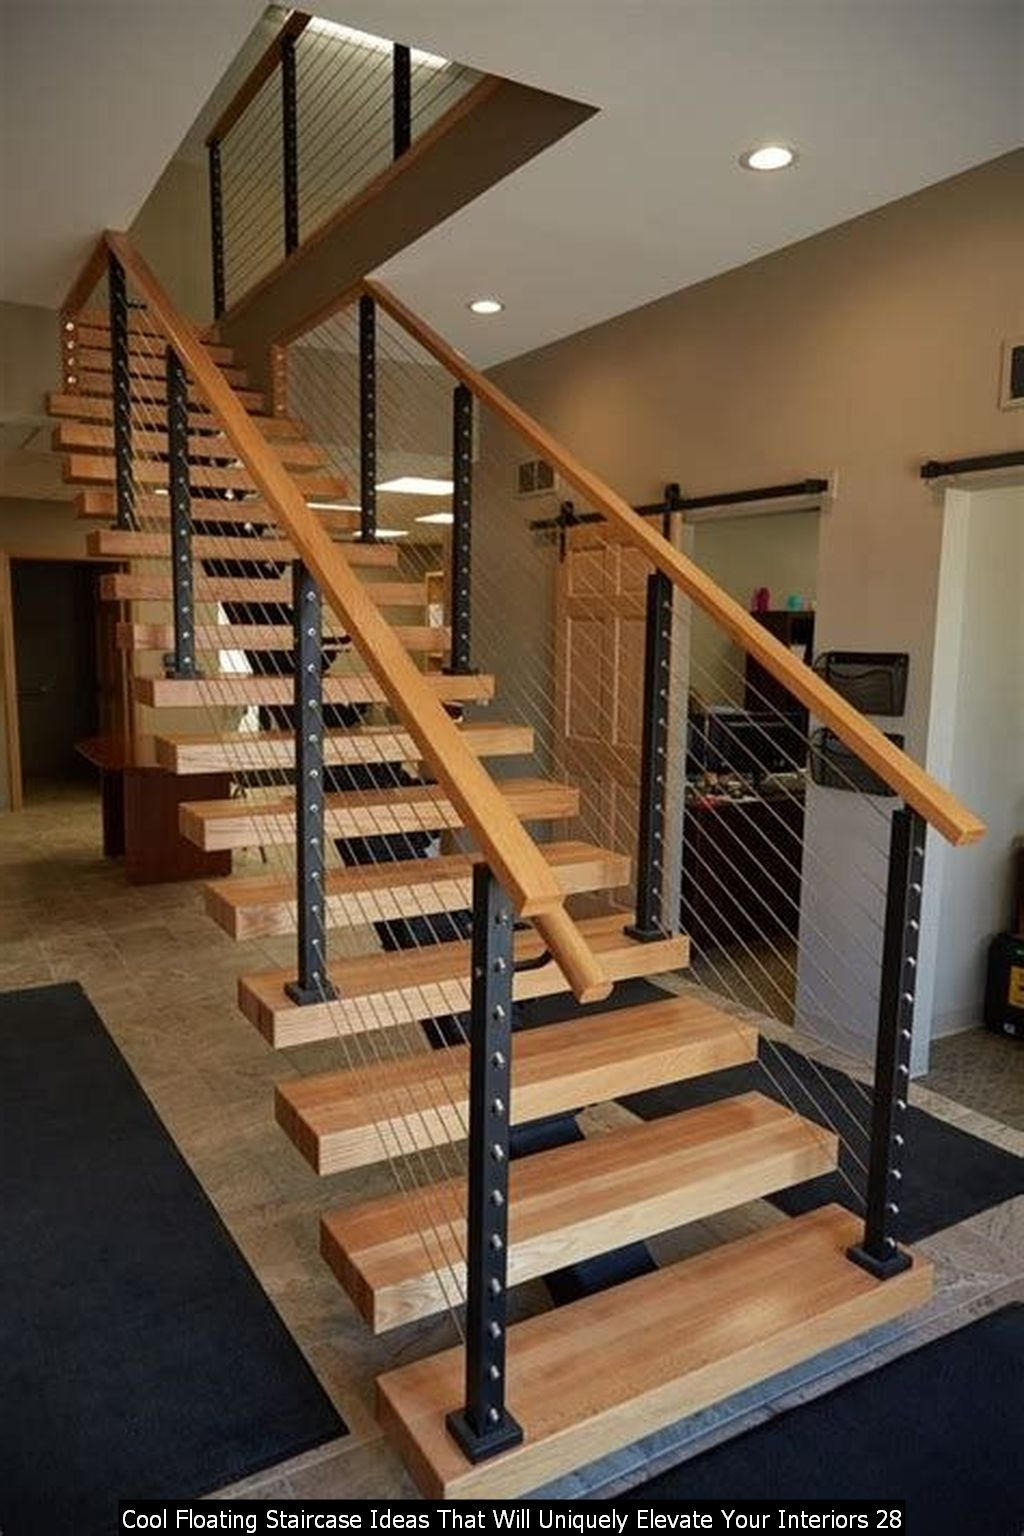 Cool Floating Staircase Ideas That Will Uniquely Elevate Your Interiors 28